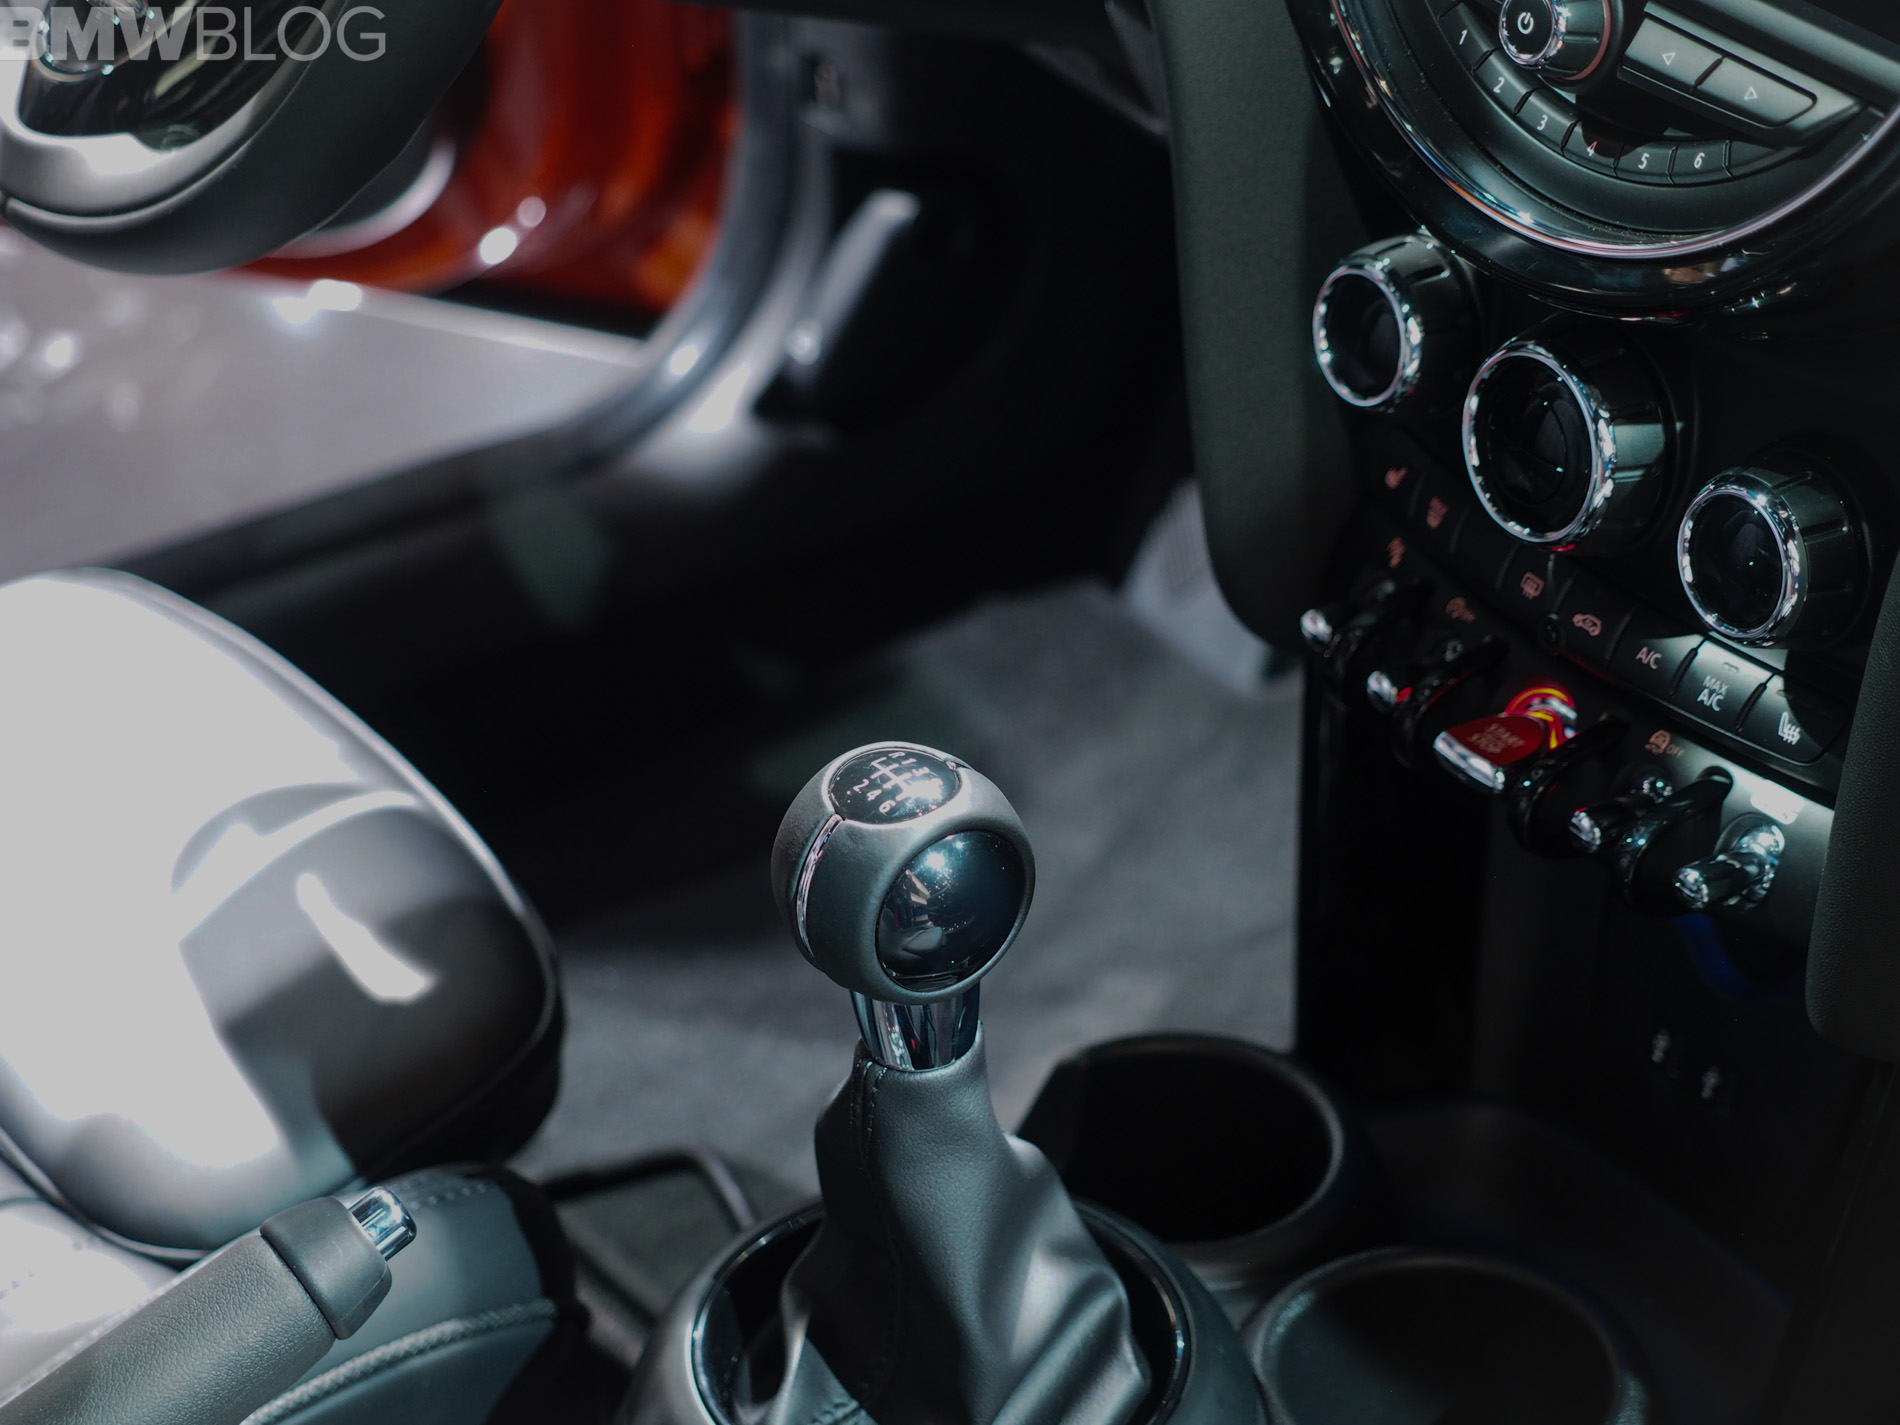 Manual MINI Models to Be Temporarily Pulled from Sale in the US